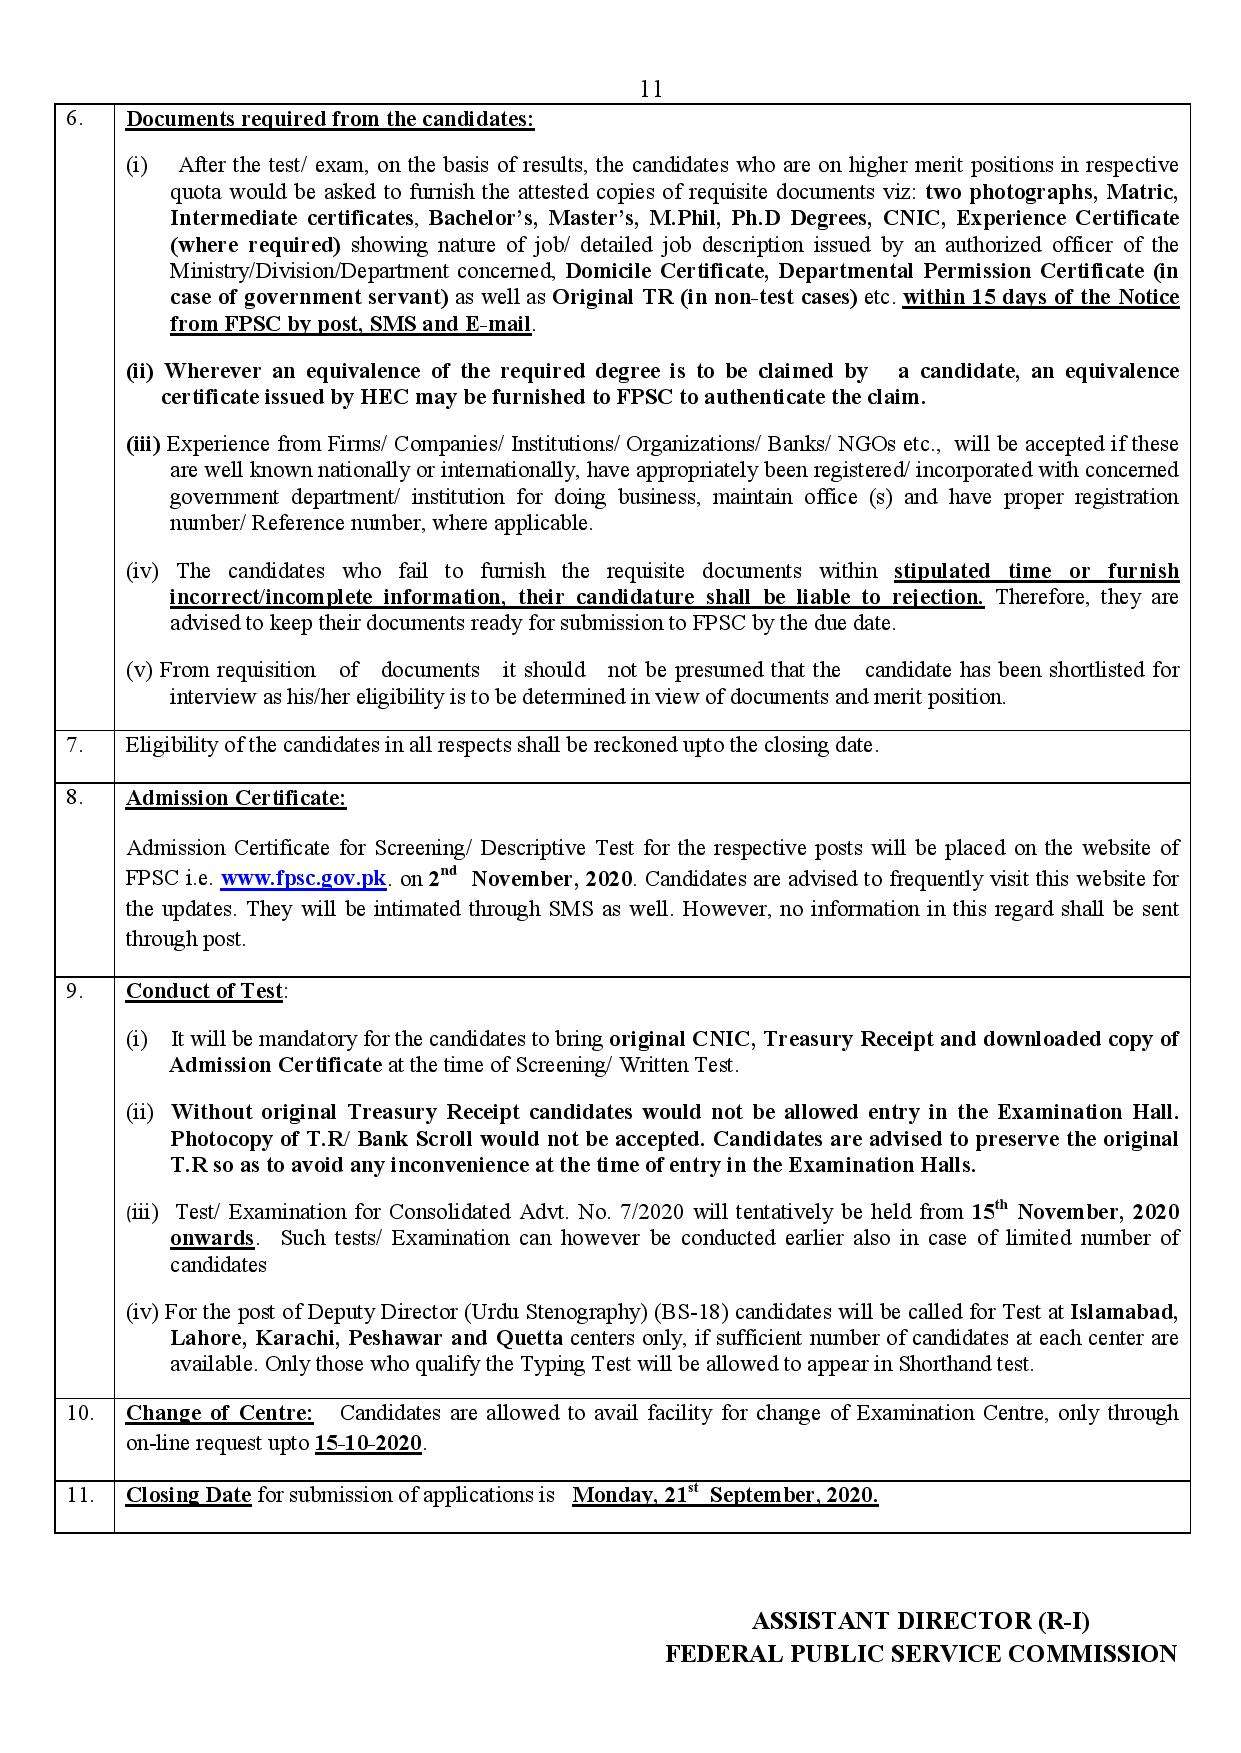 FPSC Latest Jobs September 2020 Consolidated Advertisement No 07/2020